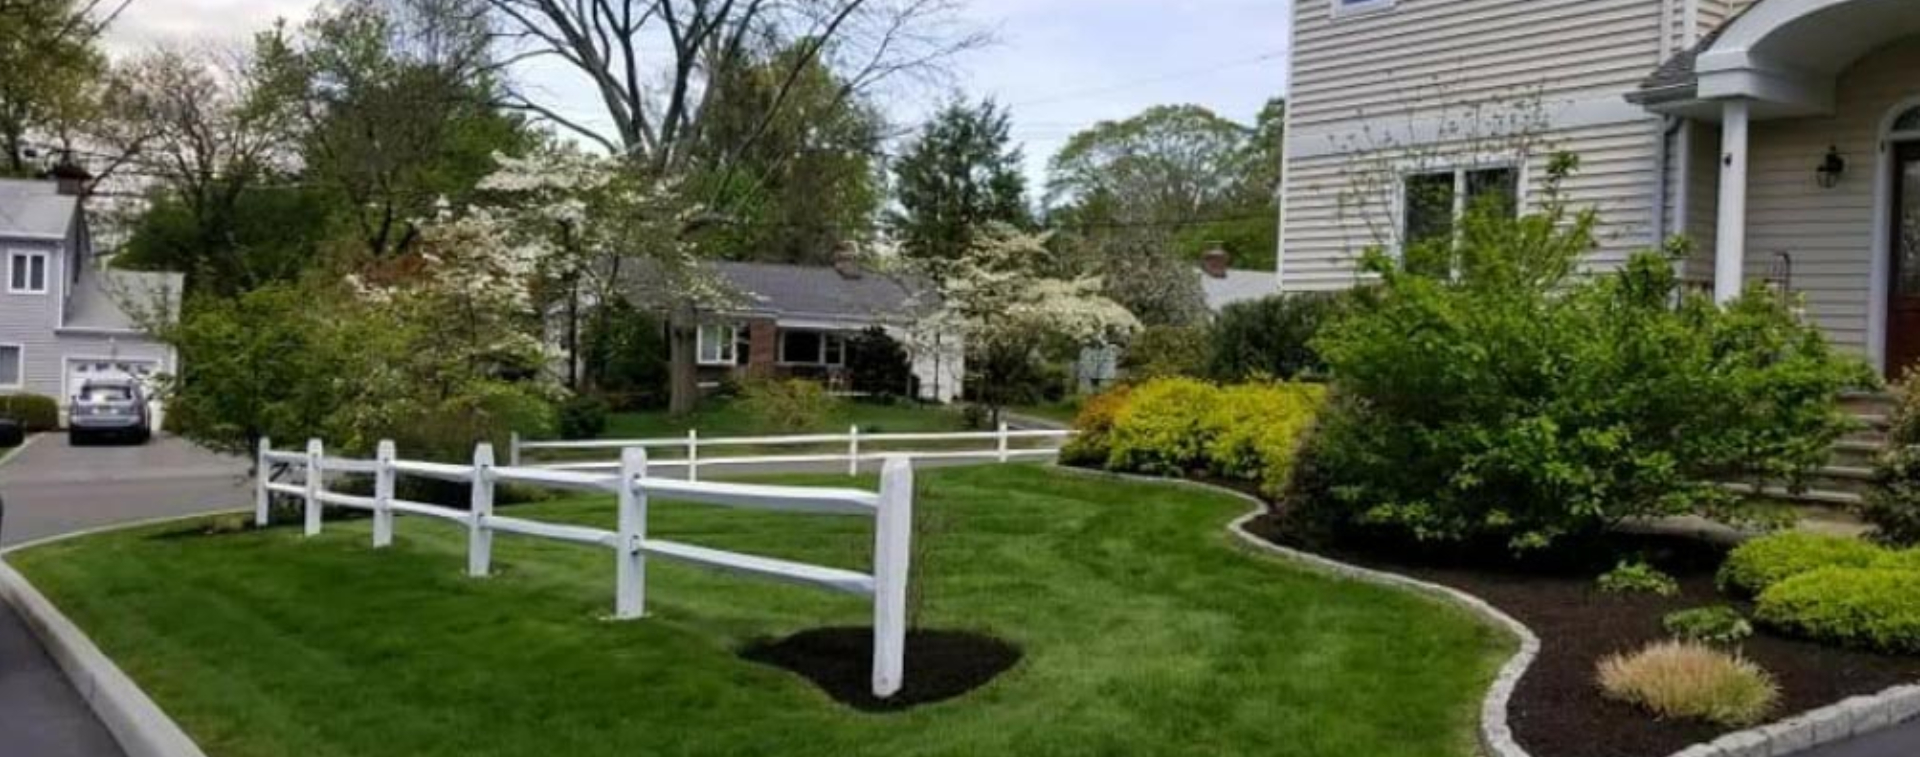 Landscape design and maintenance Westchester New York